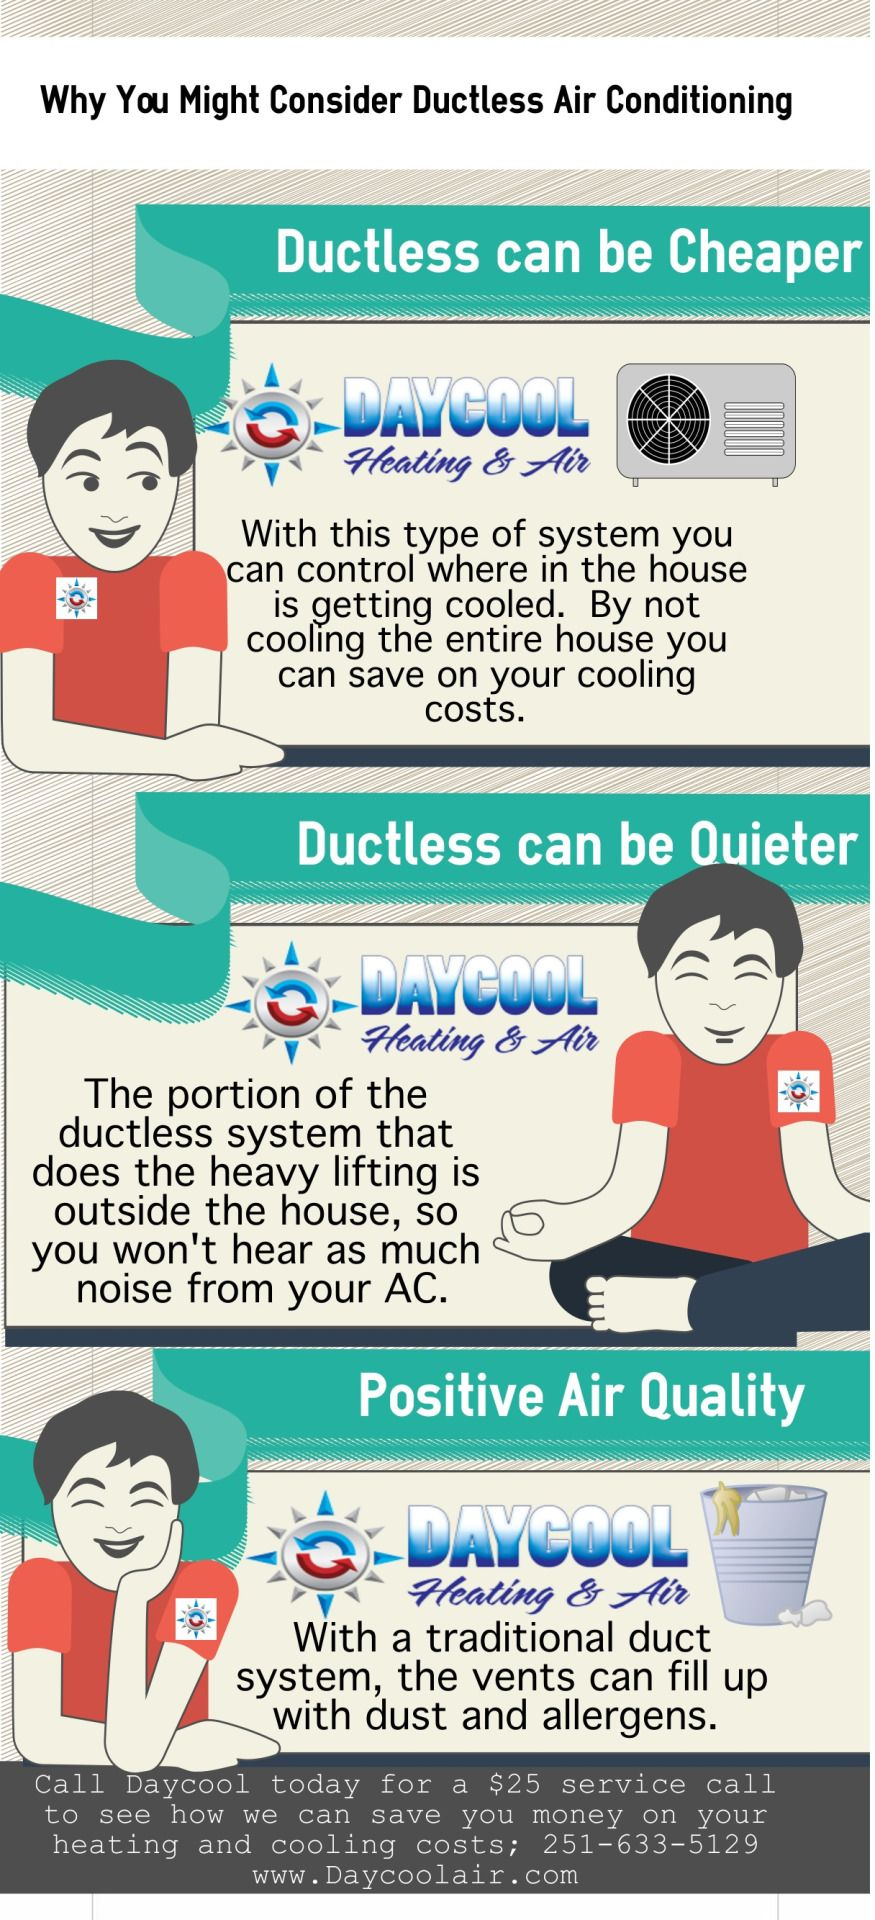 Daycool Heating & Air Social media, Infographic, Graphic